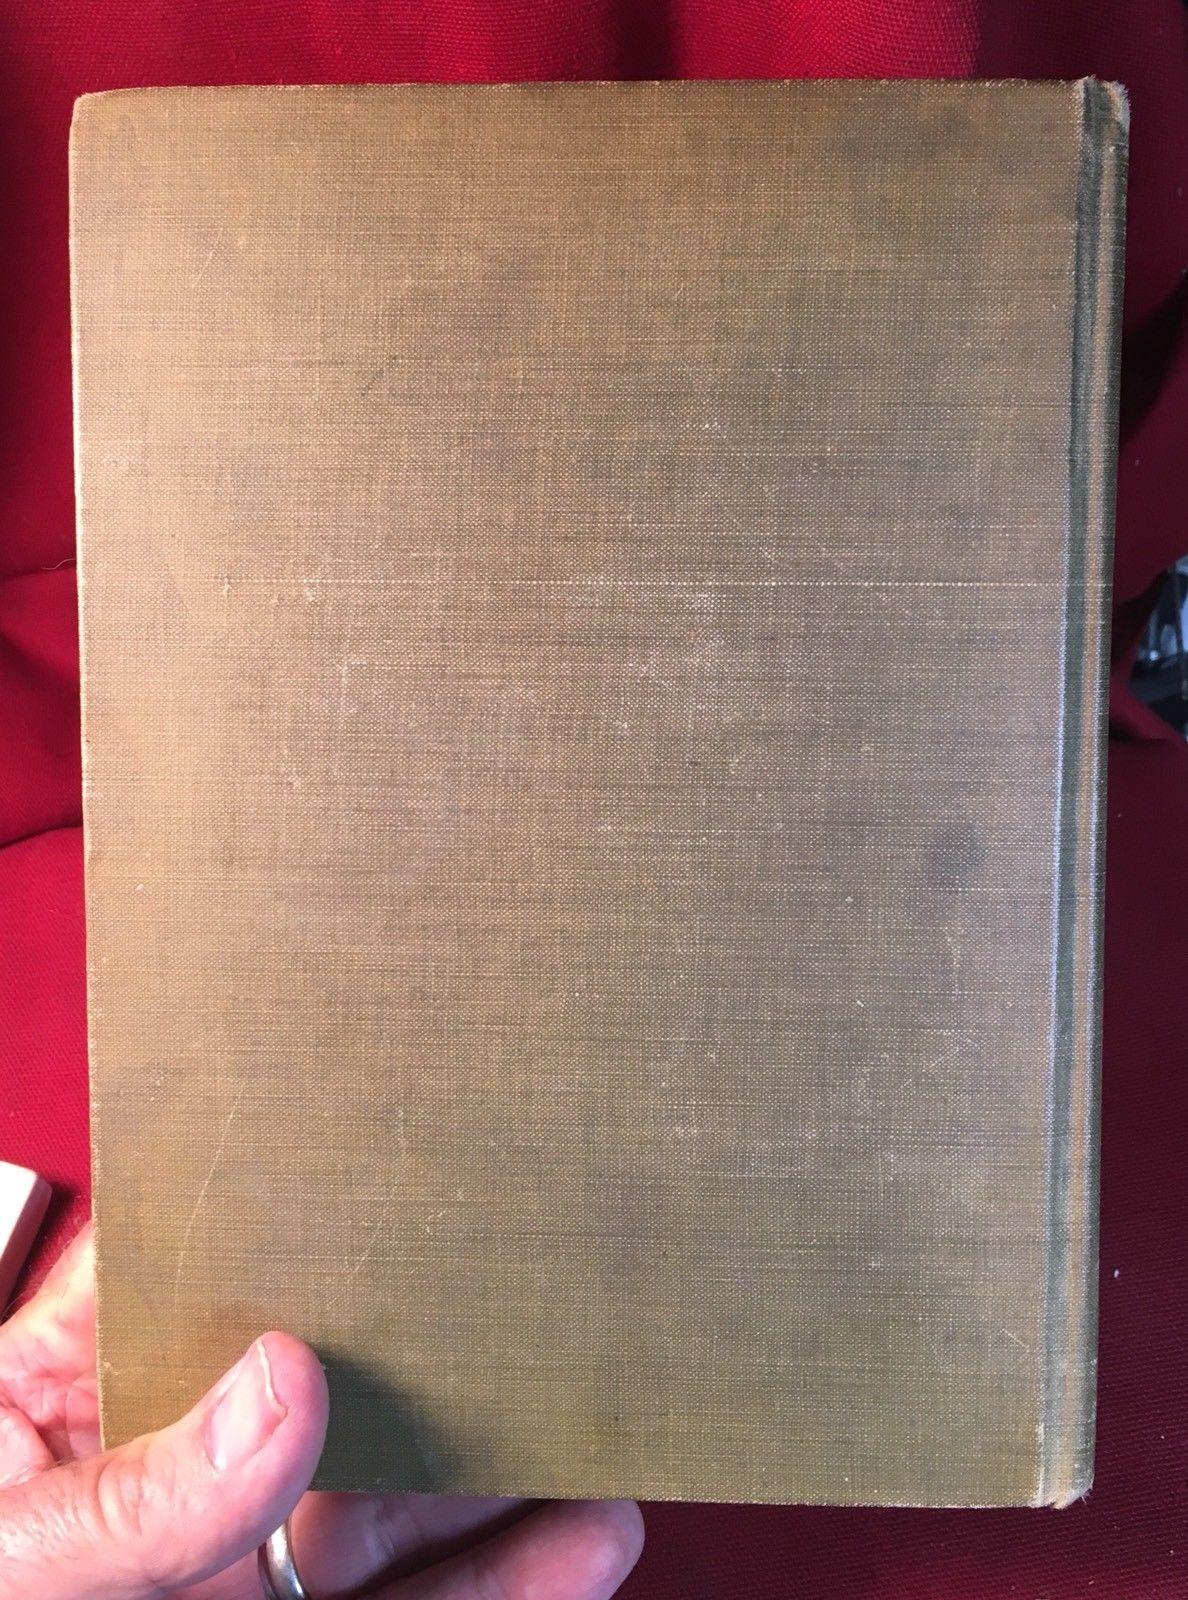 PETER AND WENDY- J.M. Barrie - First American Edition 1911 with seal (Peter Pan)